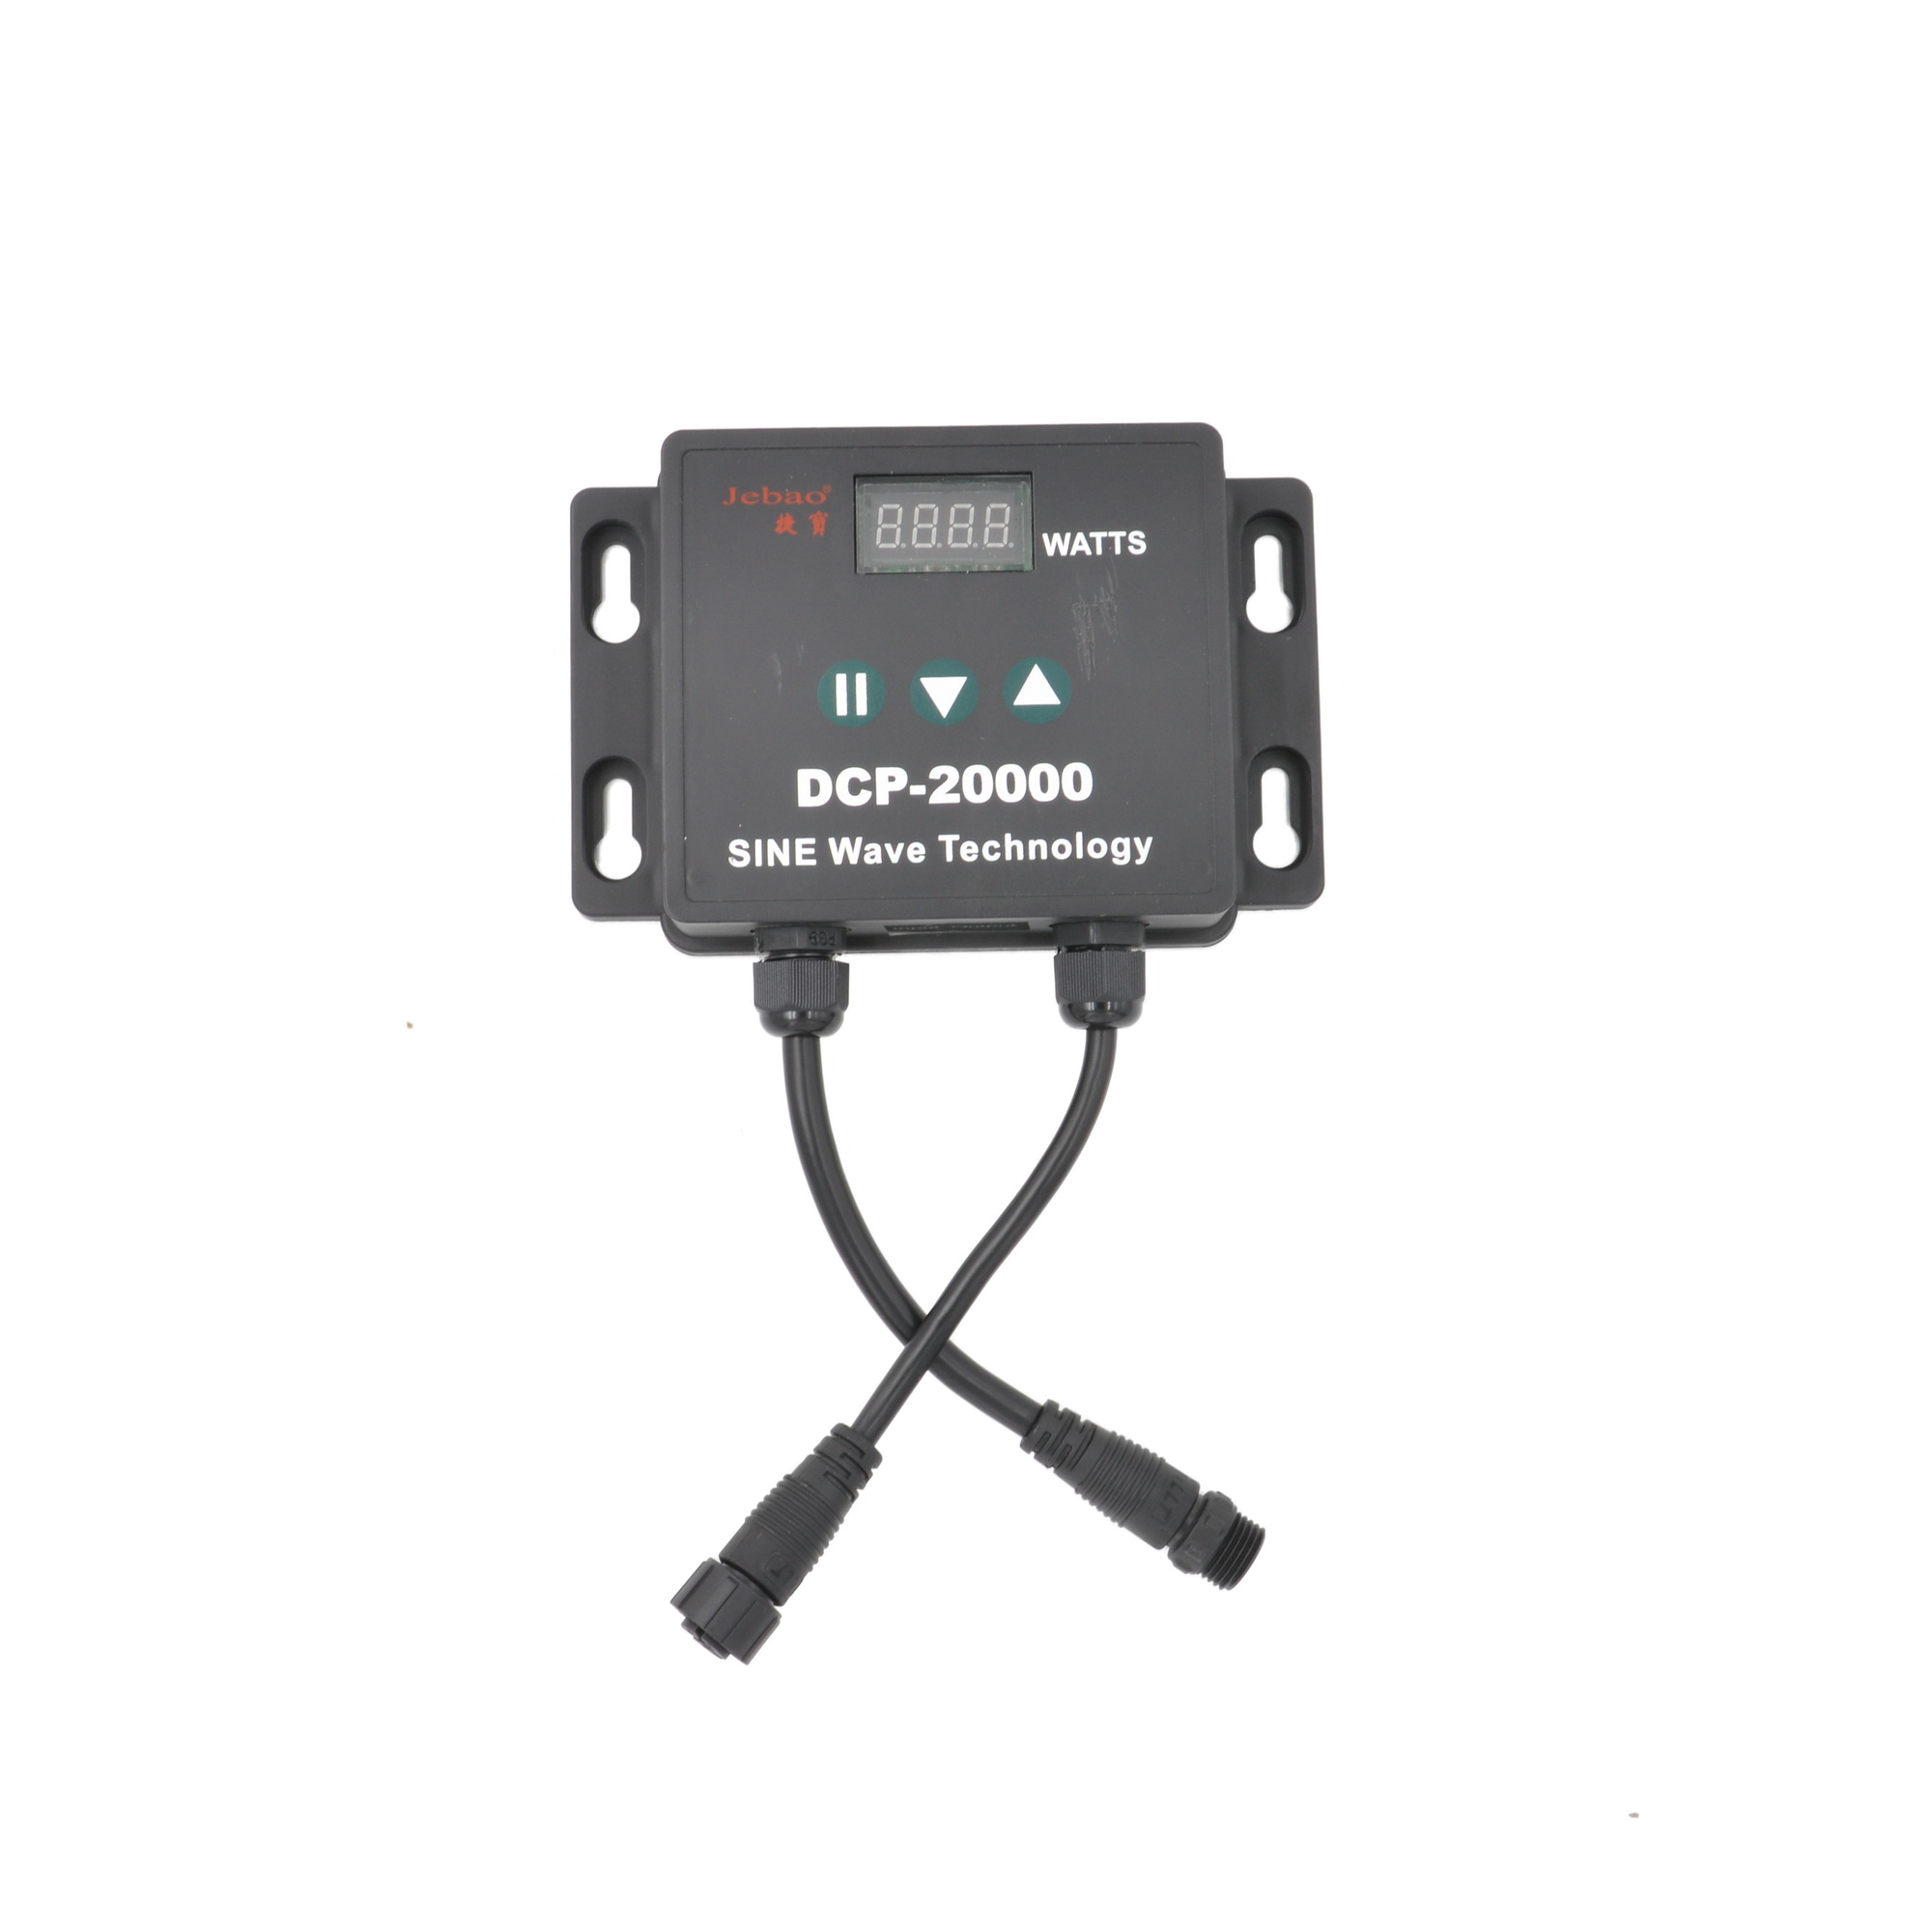 OEM Replacement Controller for Jebao DCP-18000 Return DC Pump